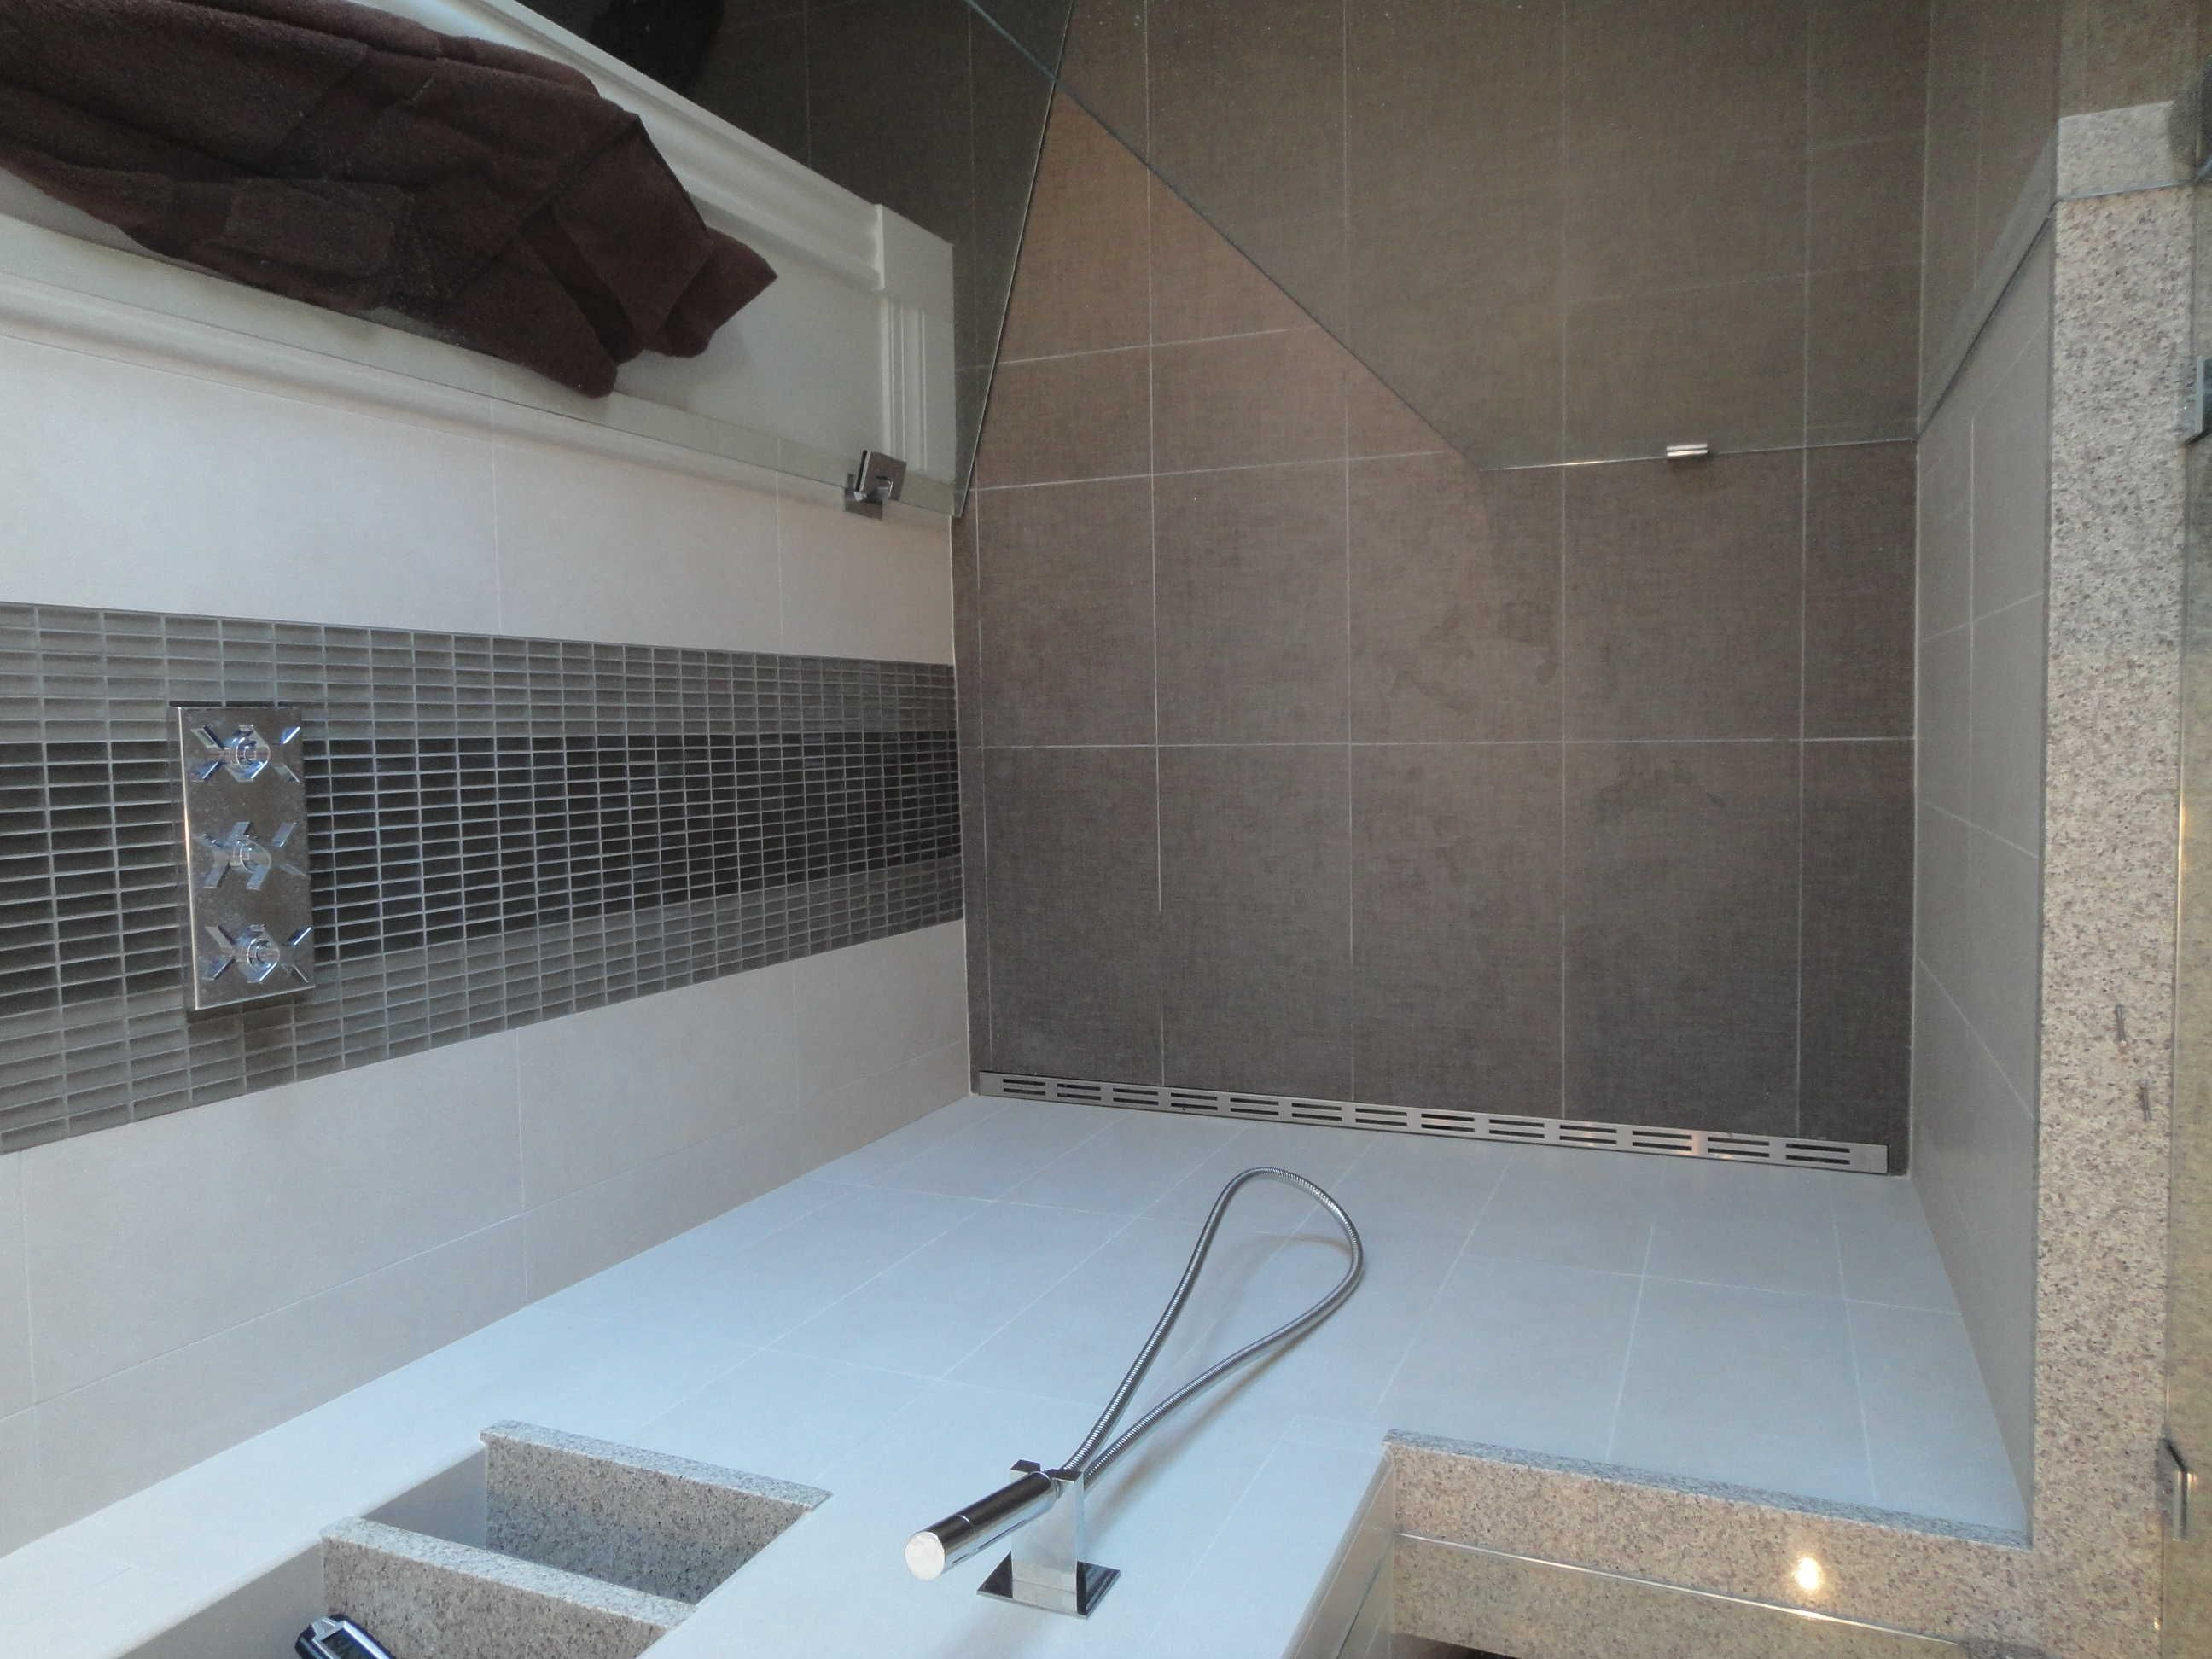 Ordinaire Tiled Shower   #Quickdrain #Proline Linear Drains